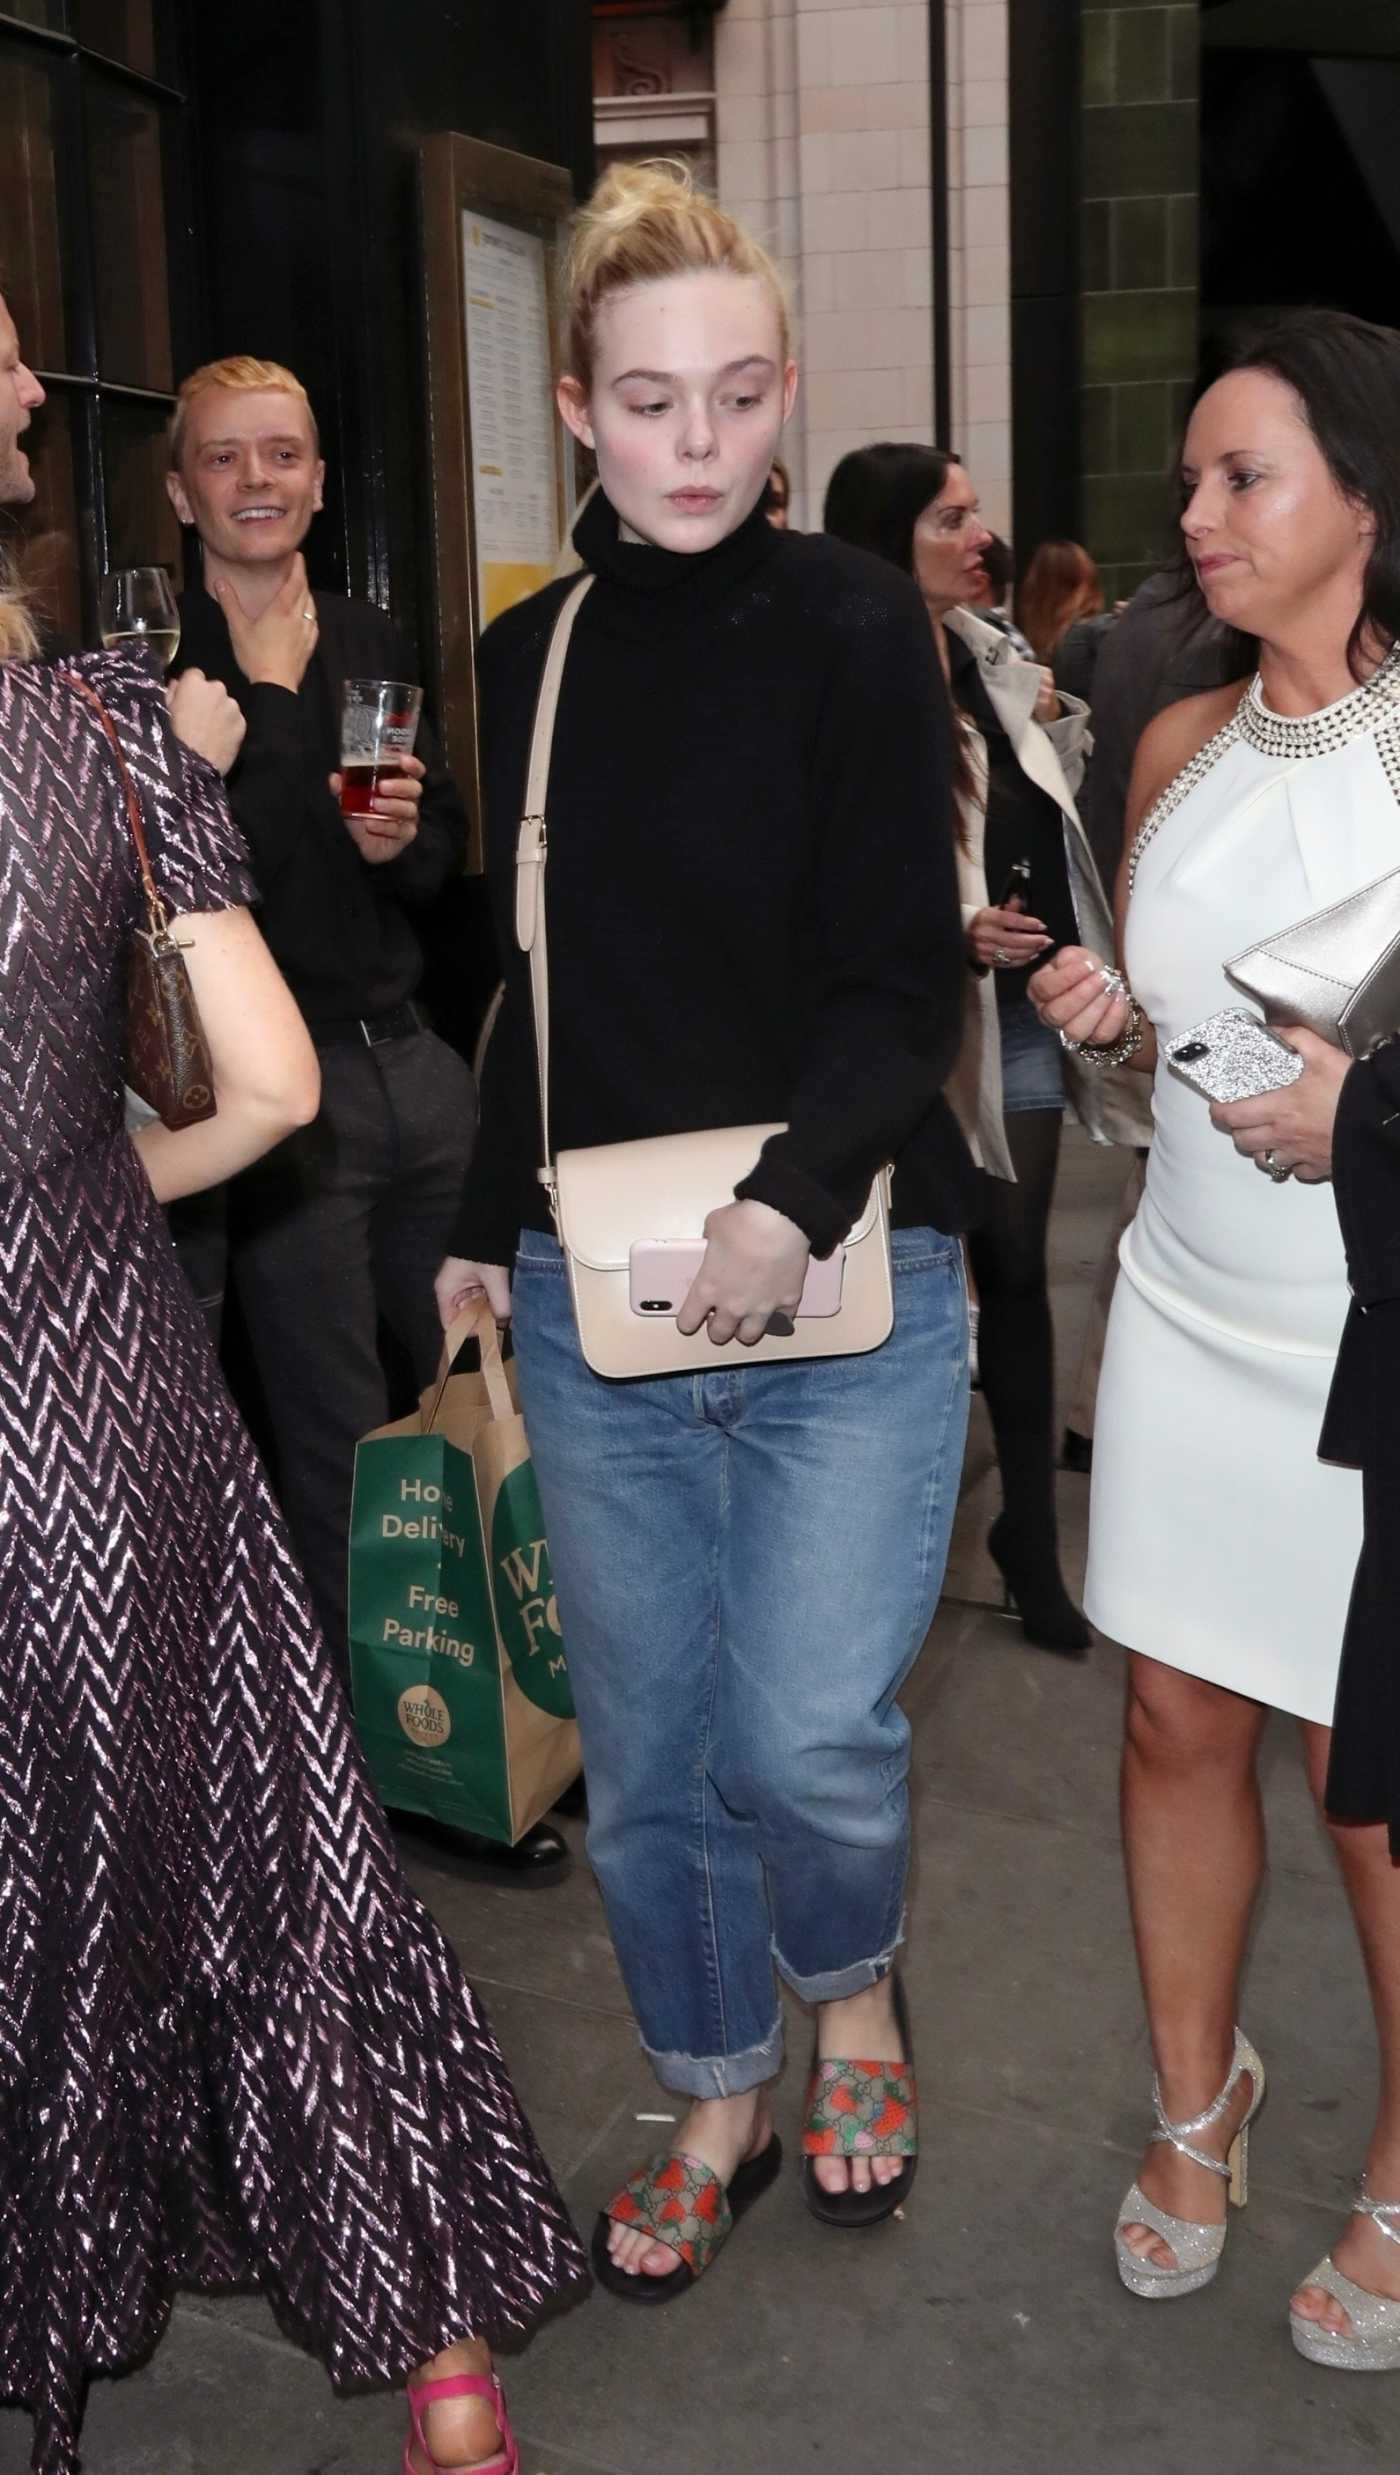 Elle Fanning in a Black Turtleneck Out Carrying a Whole Foods Grocery Bag in Soho, London 09/11/2019